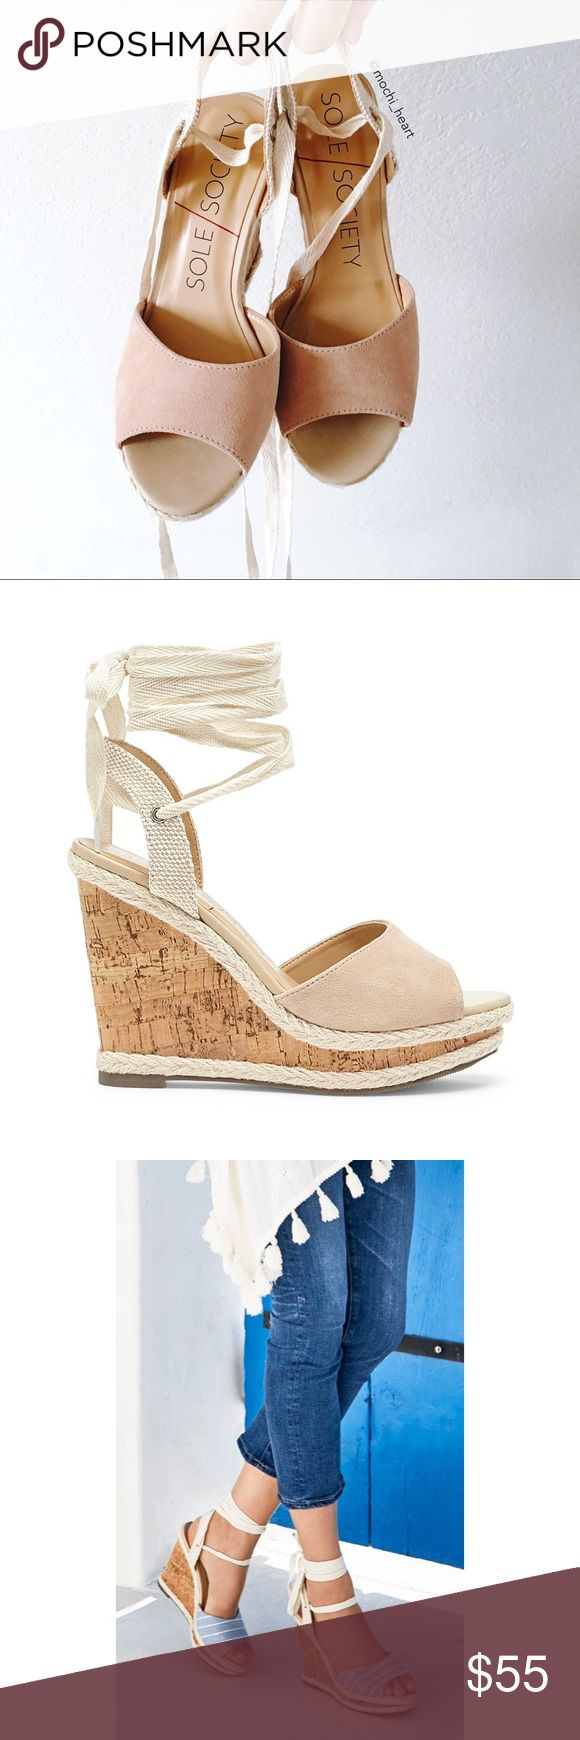 """Sole Society • light camel espadrille wedge Adorable lace-up espadrille wedges in a neutral suede. Definitely a staple for summer or comfortable to wear on your next vacation. Features wraparound ankle straps and 4"""" wedge. Sole Society Shoes Wedges"""